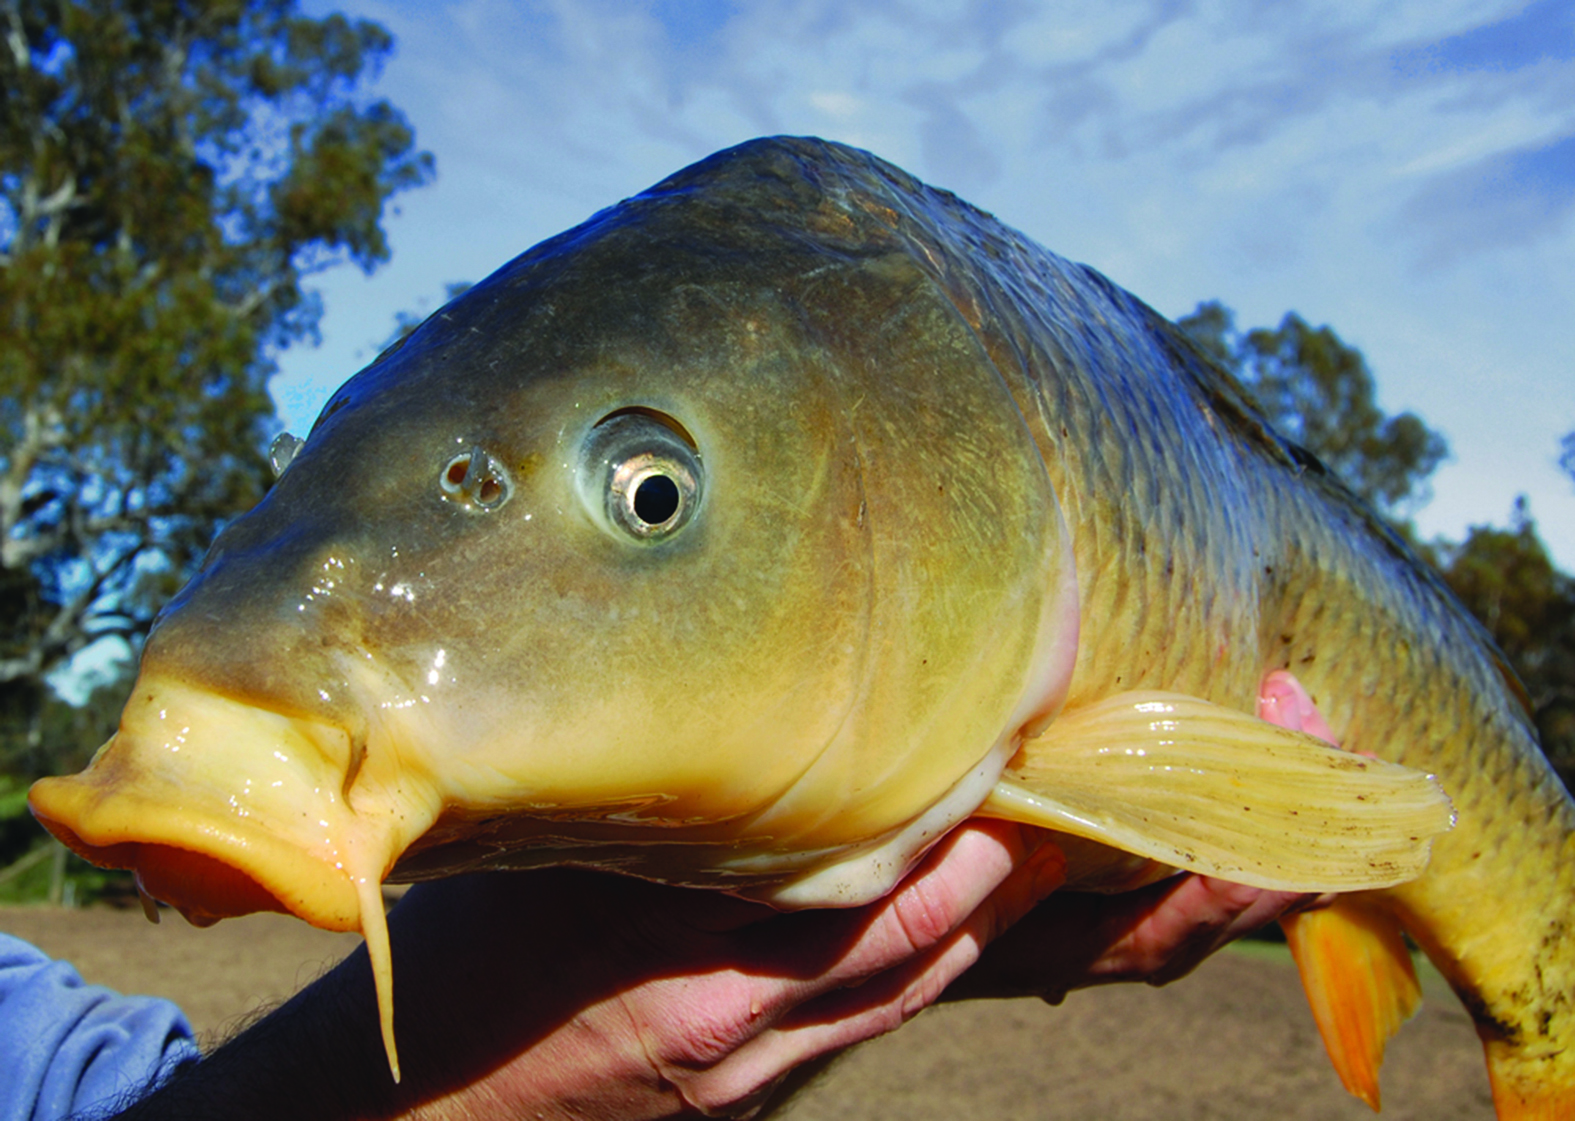 Carp_closeup_high-res_Marc-Ainsworth_cmyk_col-repl